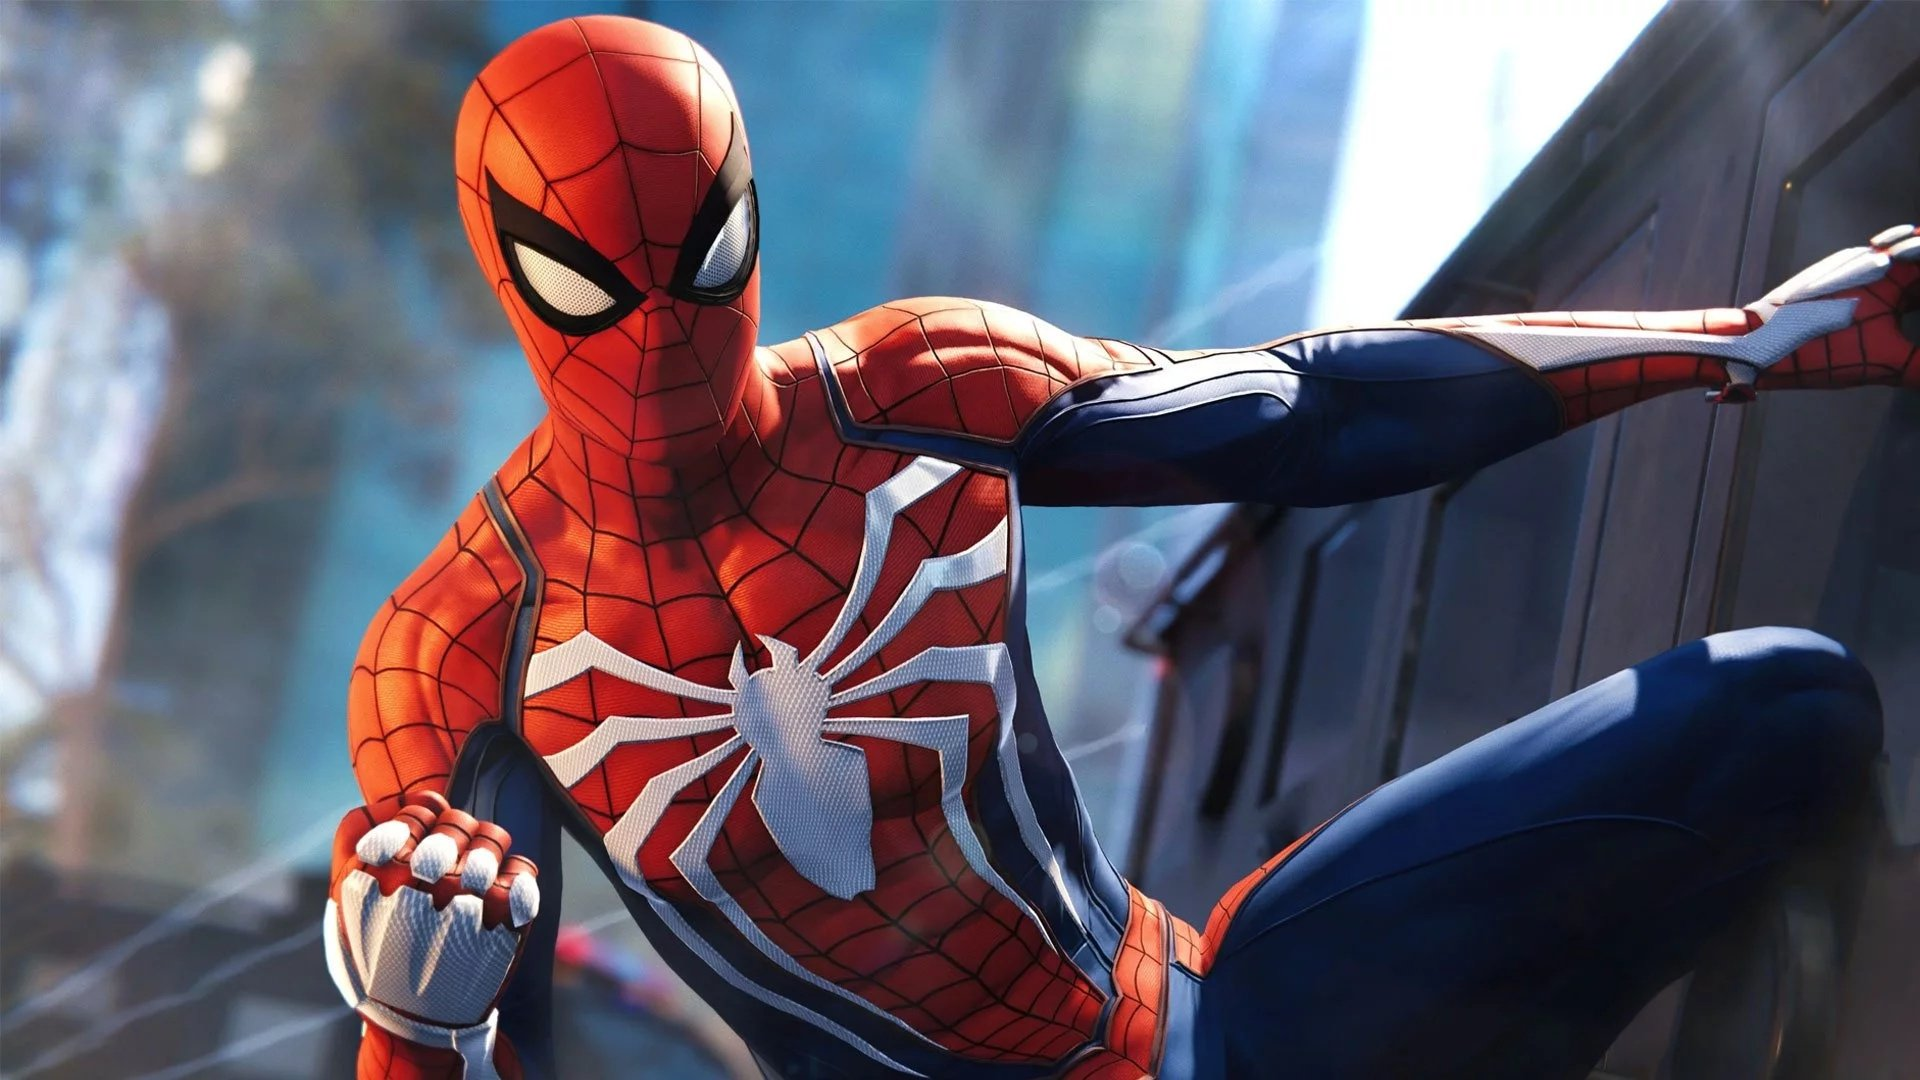 Spider-Man 2 on PS5 may be launching in 2021